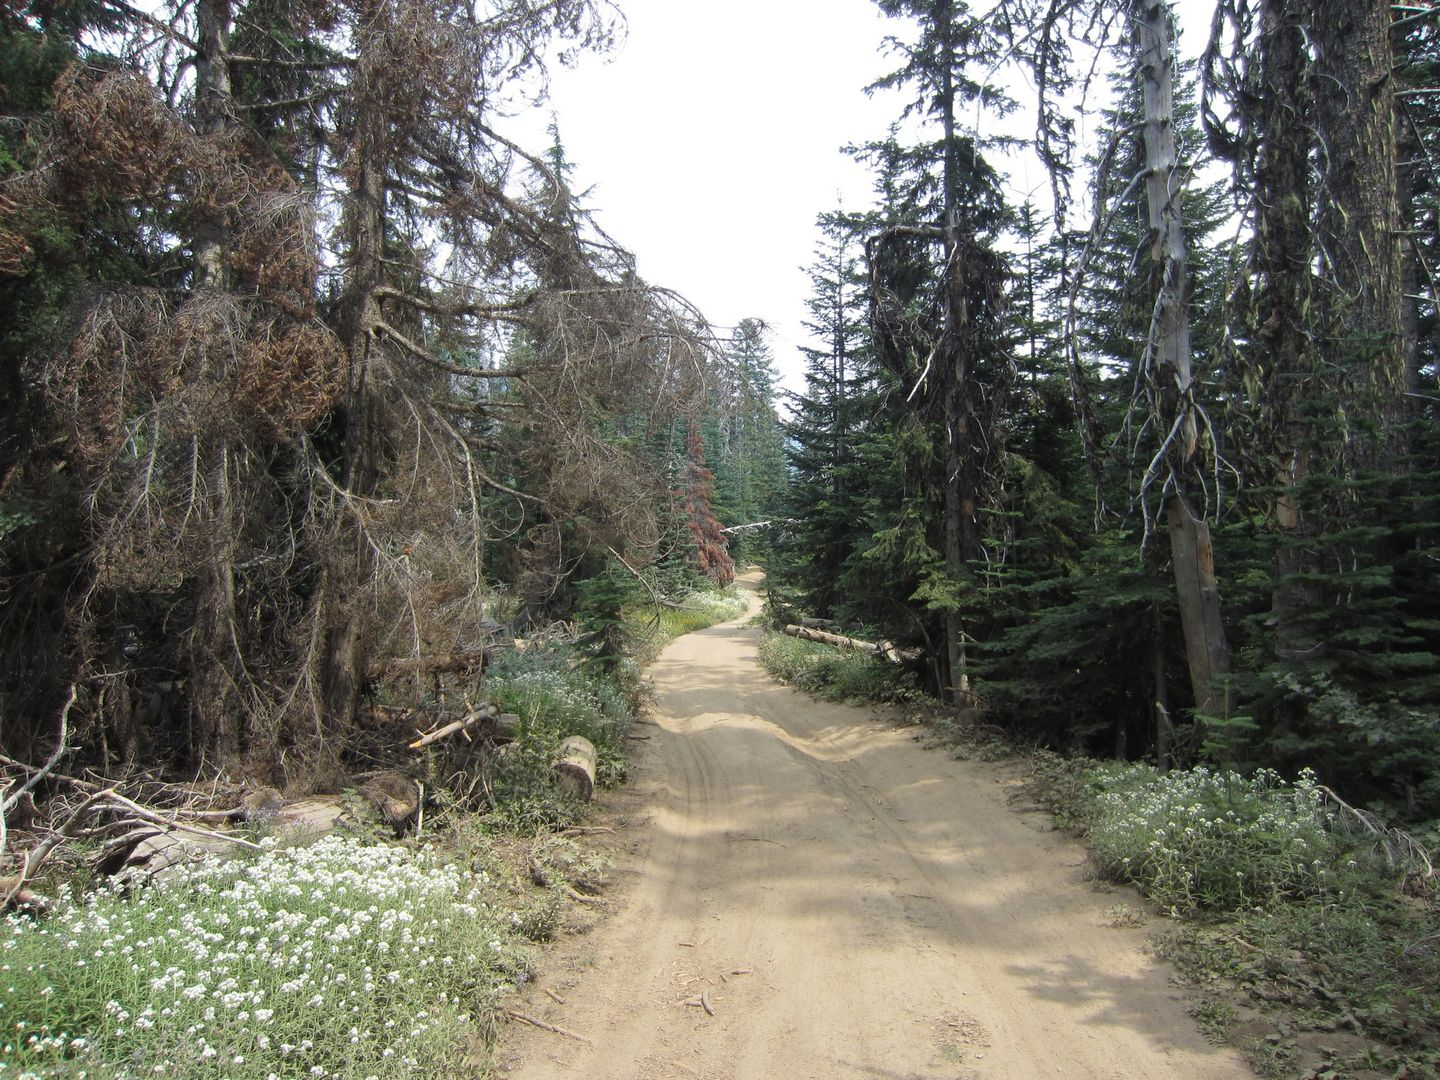 Bennett Pass Road - Waypoint 11: Stay North at Unmarked Trail